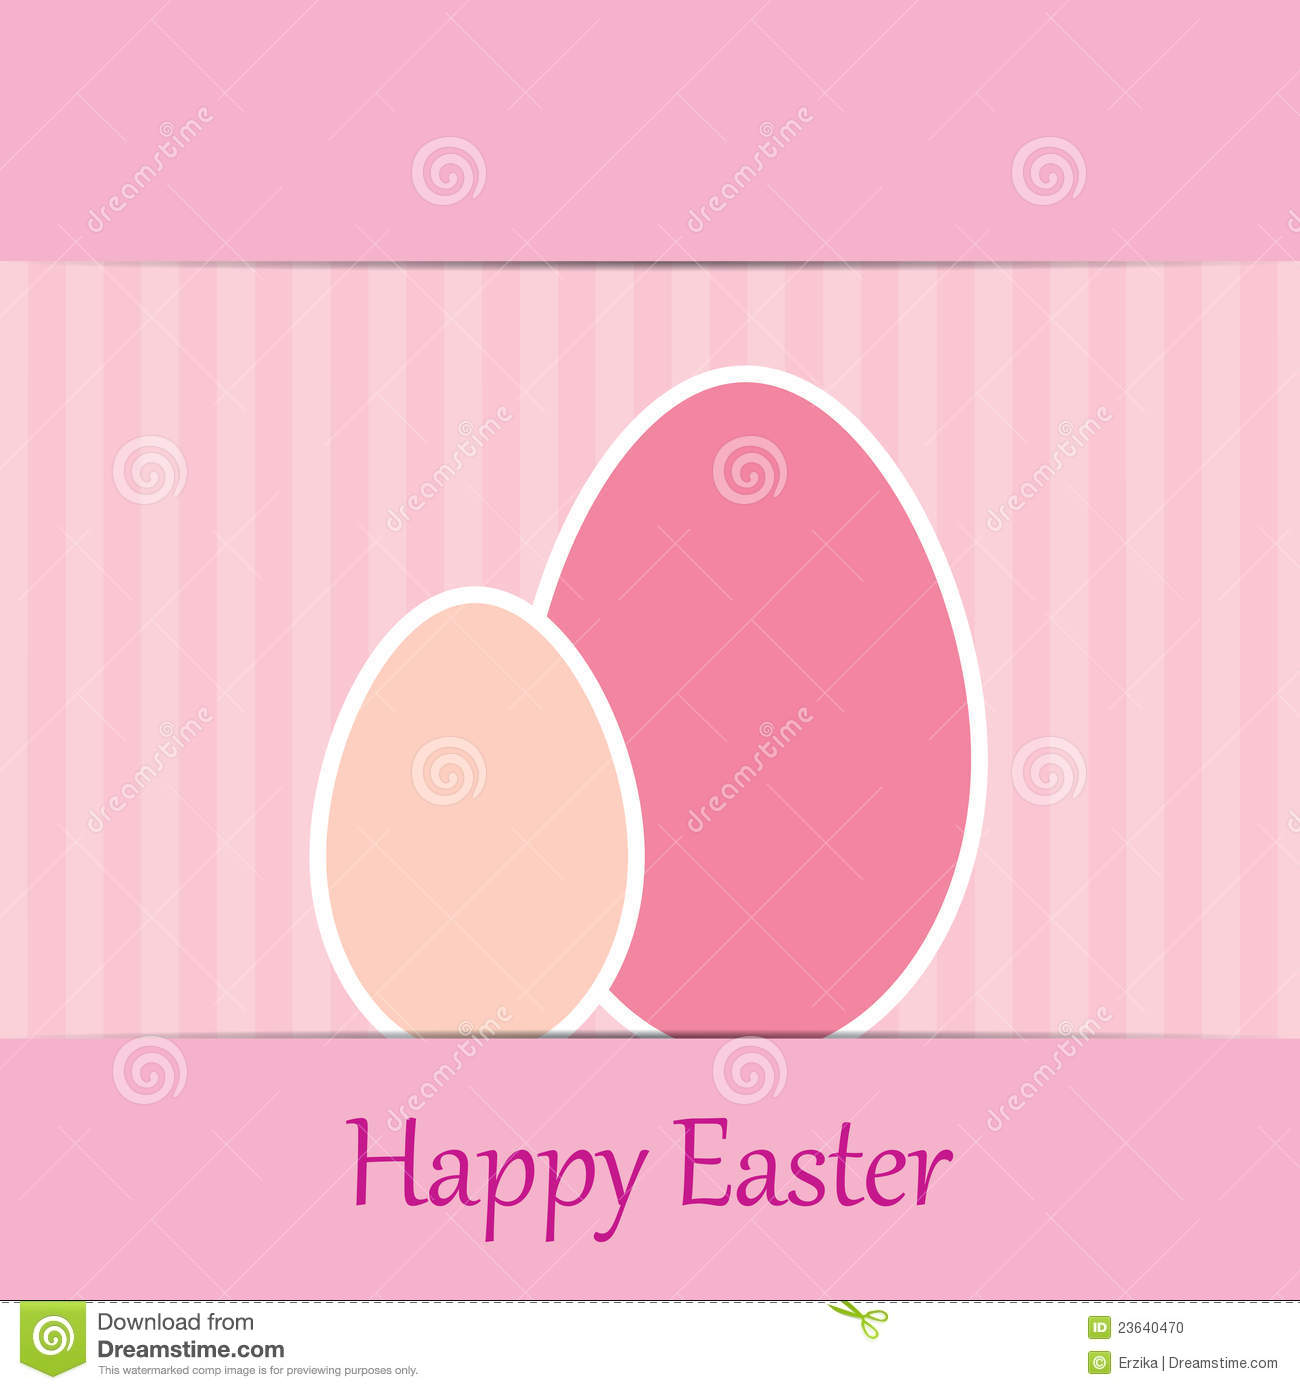 Colorful easter card with two eggs